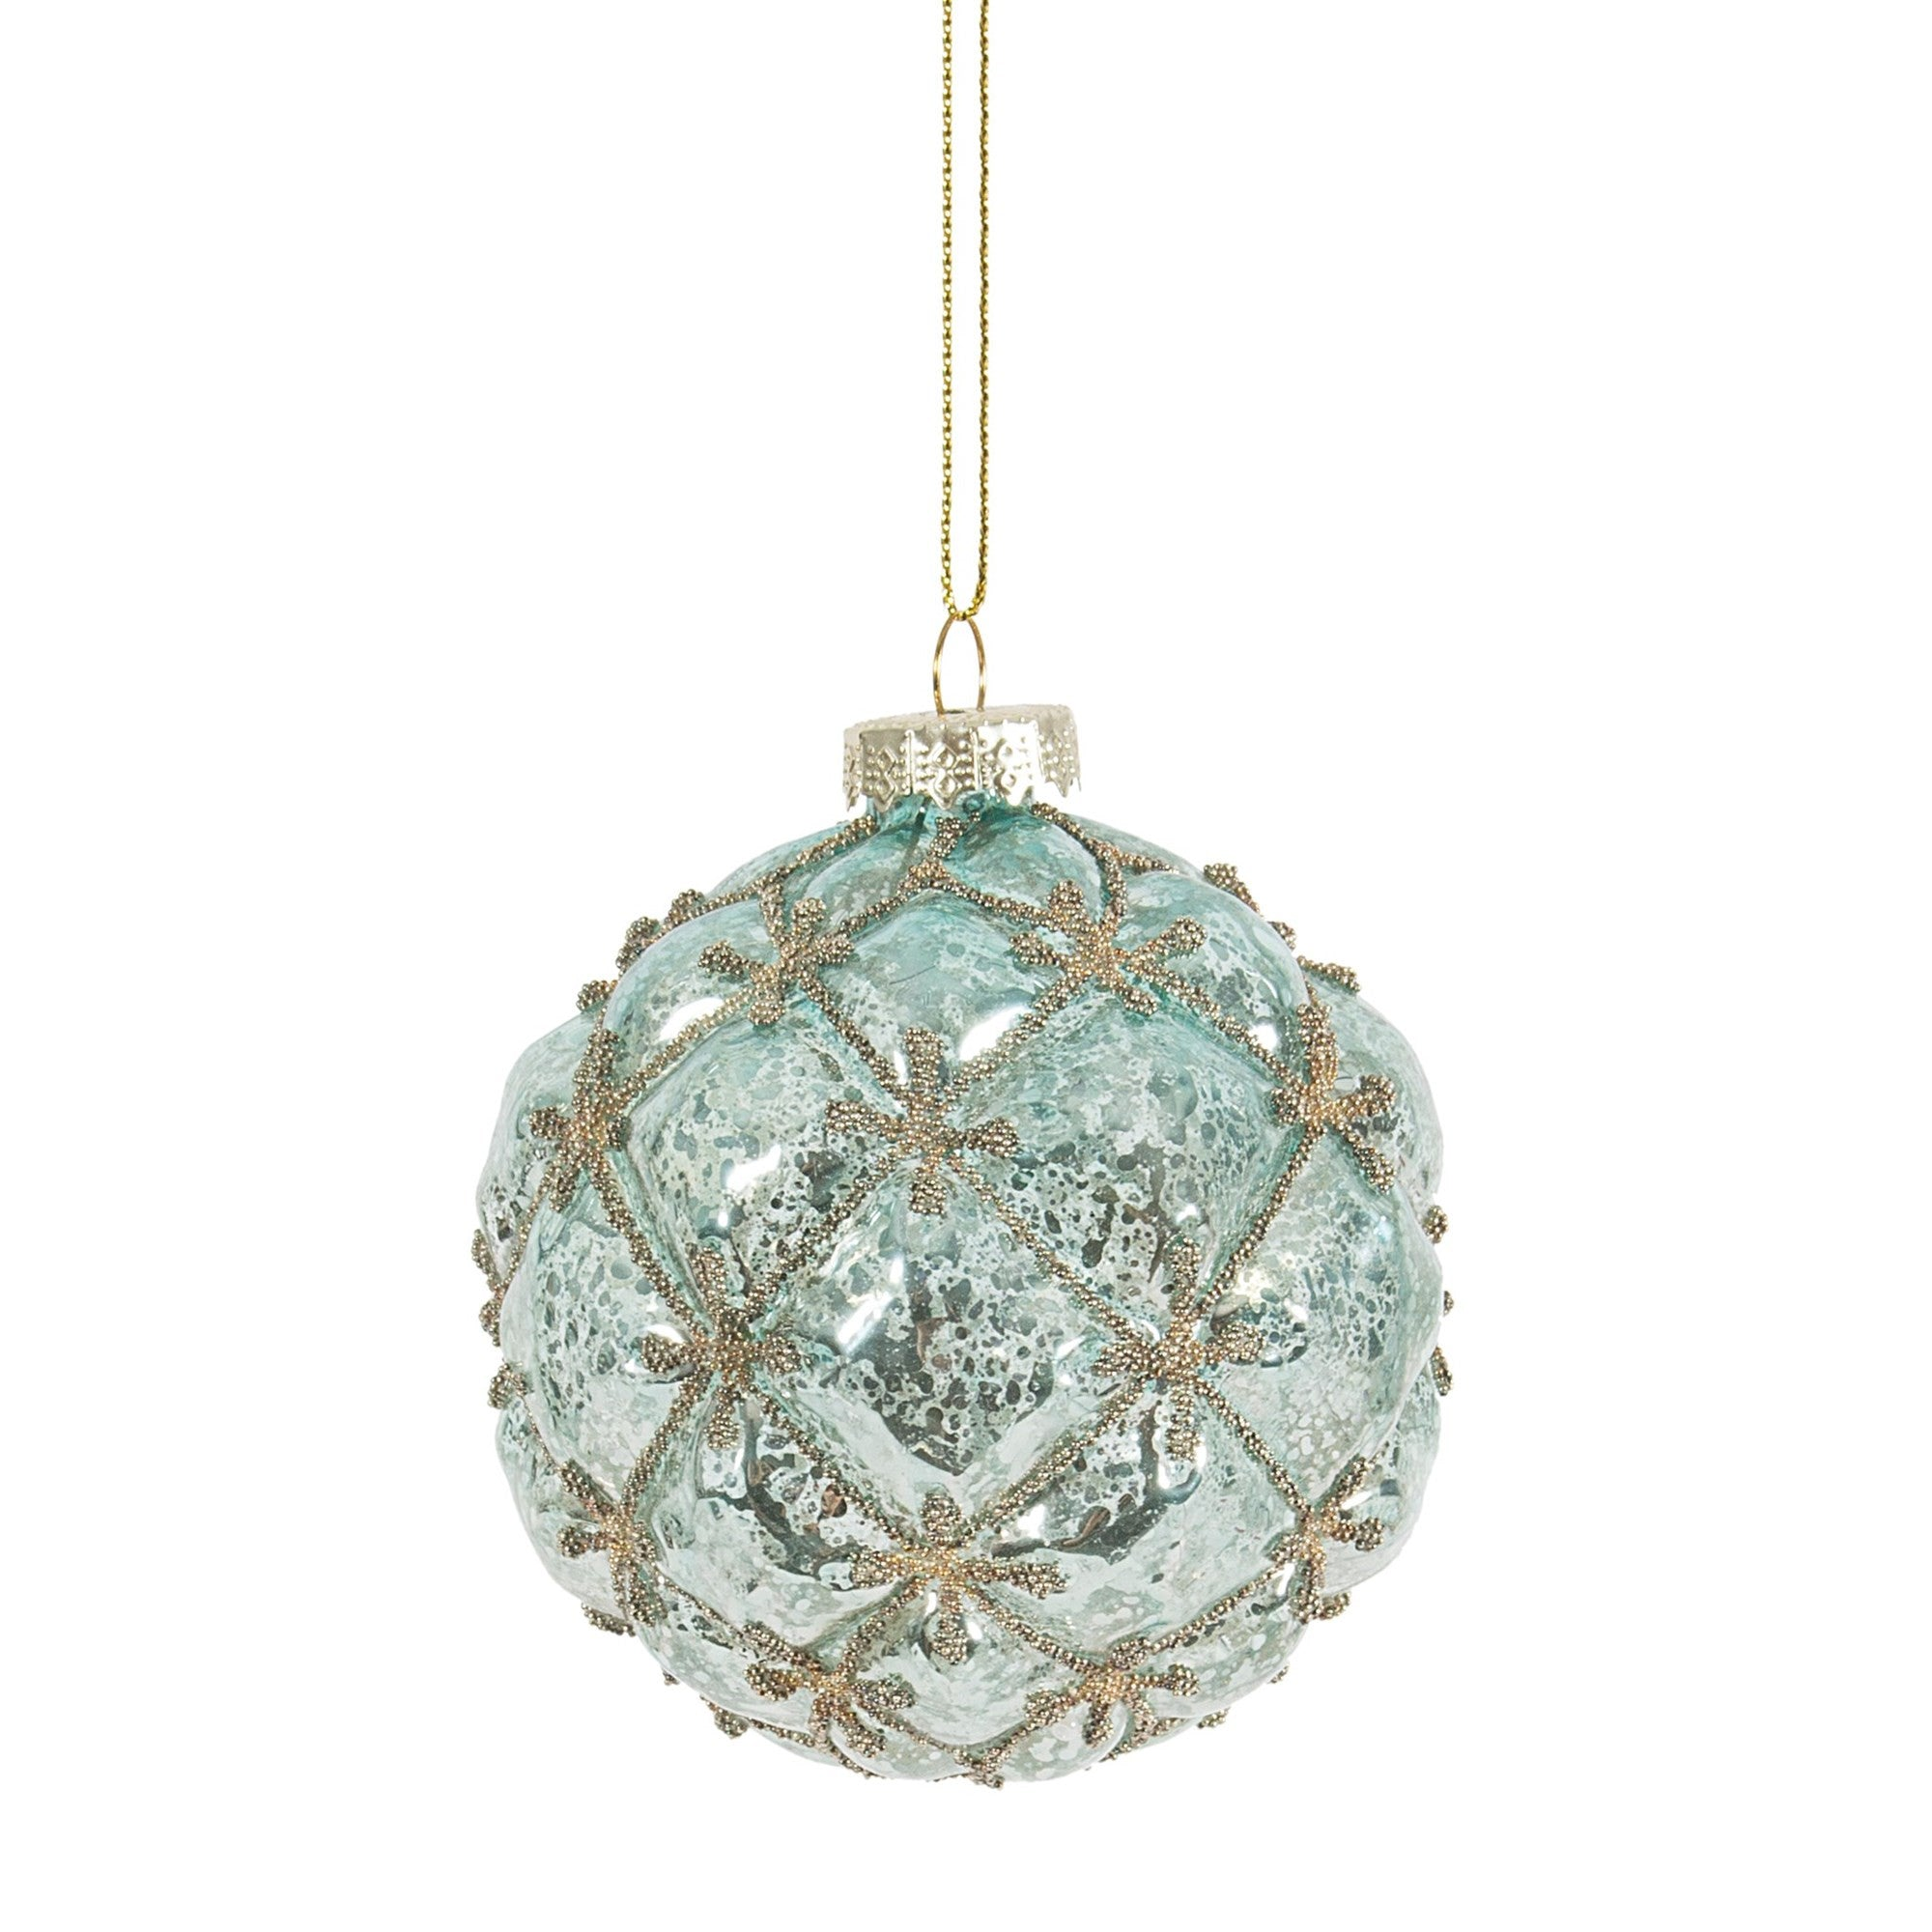 Pale Aqua Gold Beaded Glass Ball Ornament, CF-Canfloyd, Putti Fine Furnishings